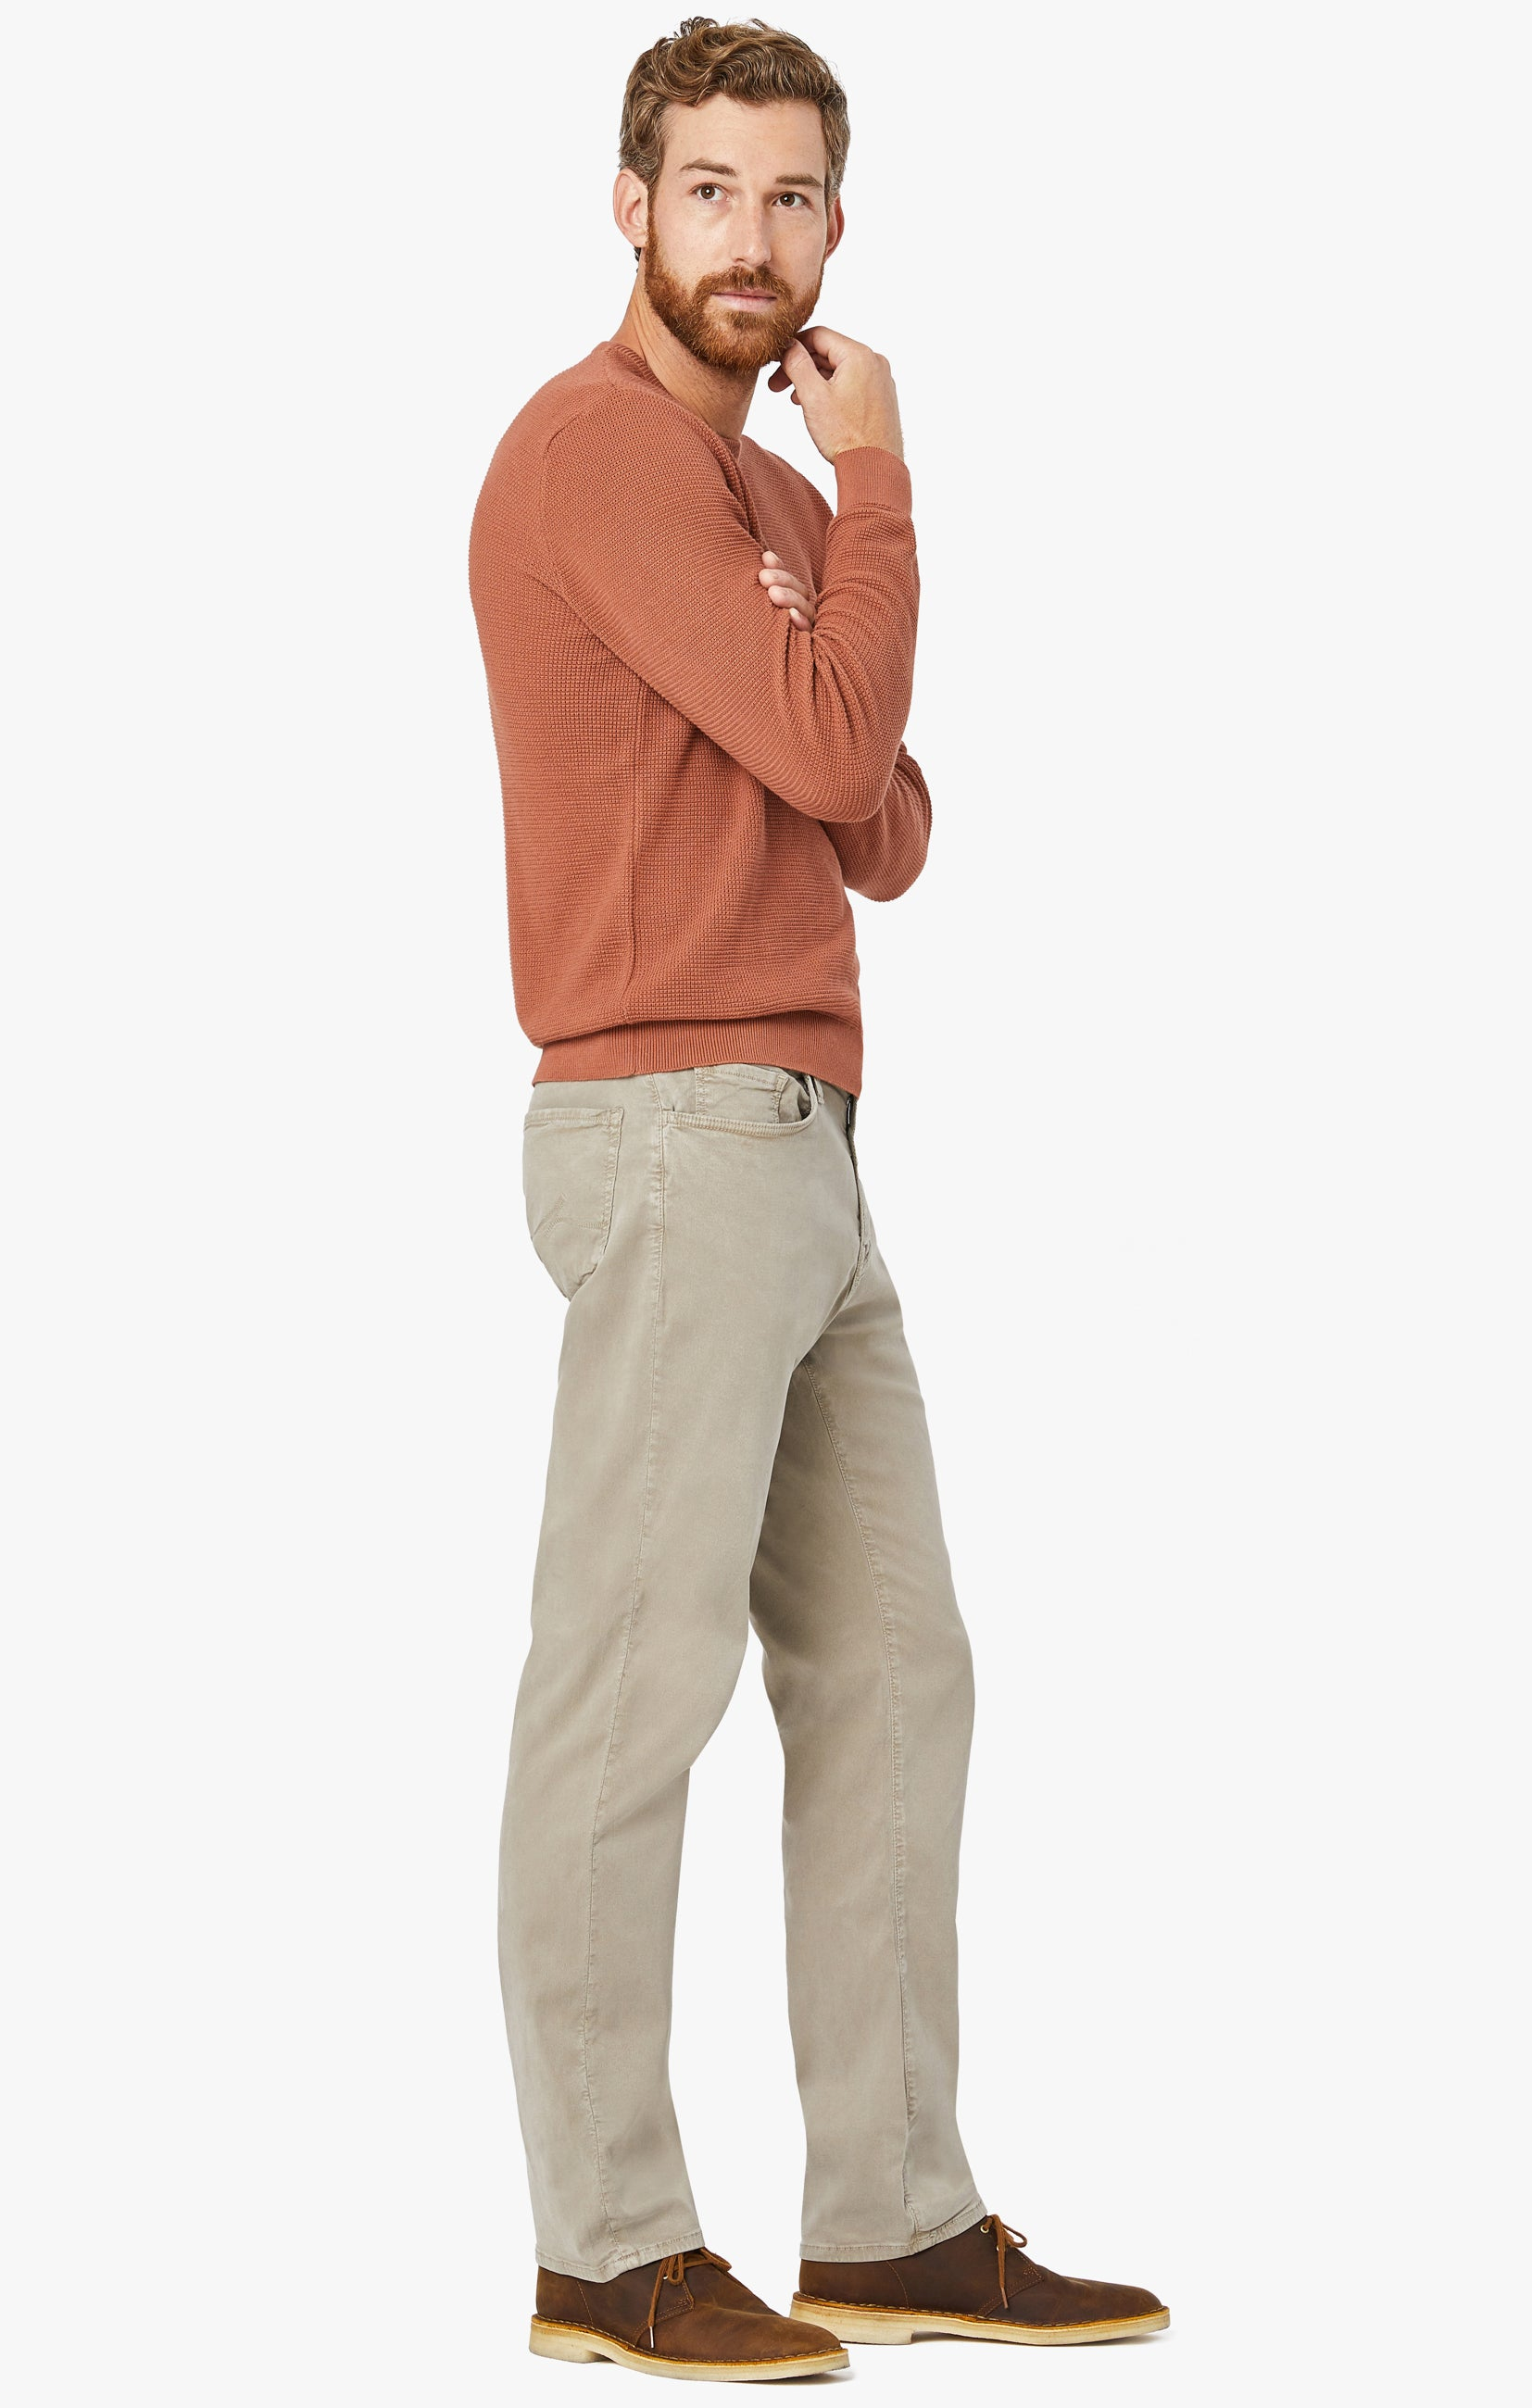 Charisma Classic Fit Pants in Mushroom Soft Touch Image 7